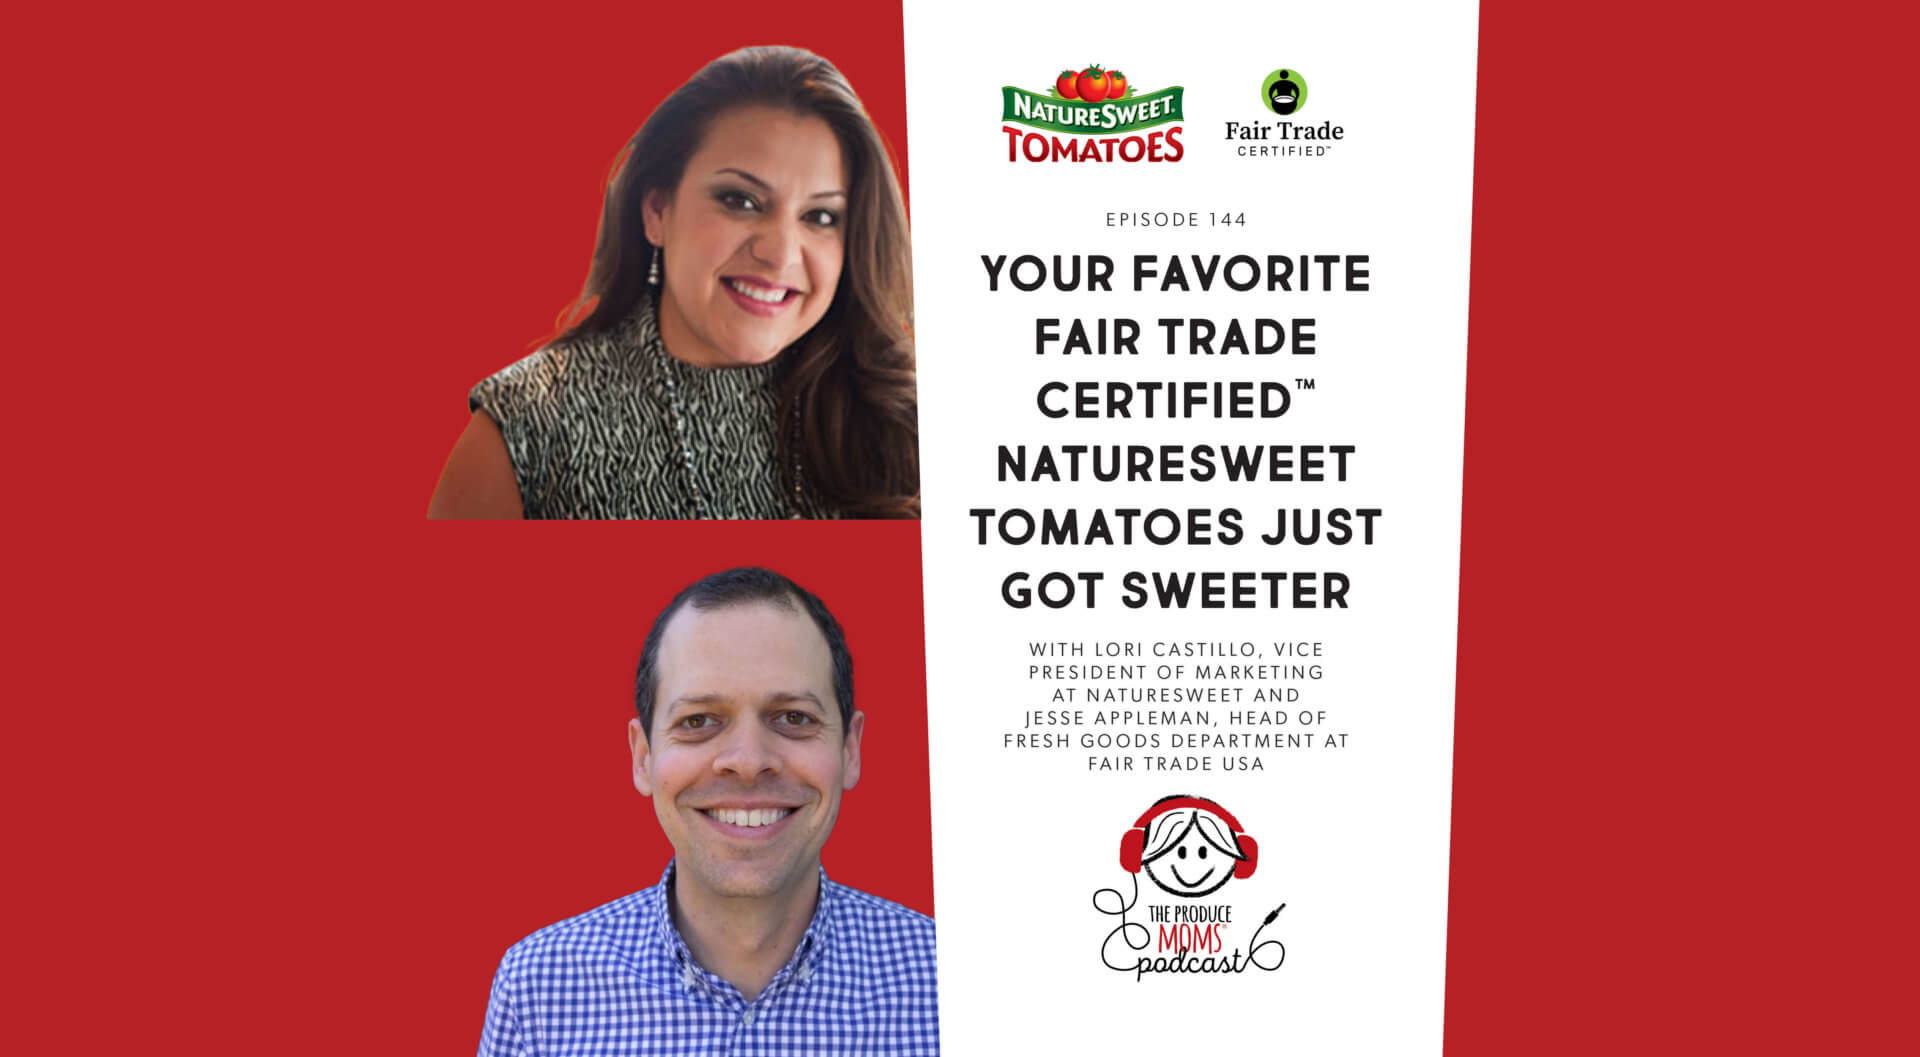 Episode 144: Your Favorite Fair Trade Certified™NatureSweet Tomatoes Just Got Sweeter With Lori Castillo, Vice President Of Marketing At NatureSweet And Jesse Appleman, Director Of Fresh Goods Department At Fair Trade USA